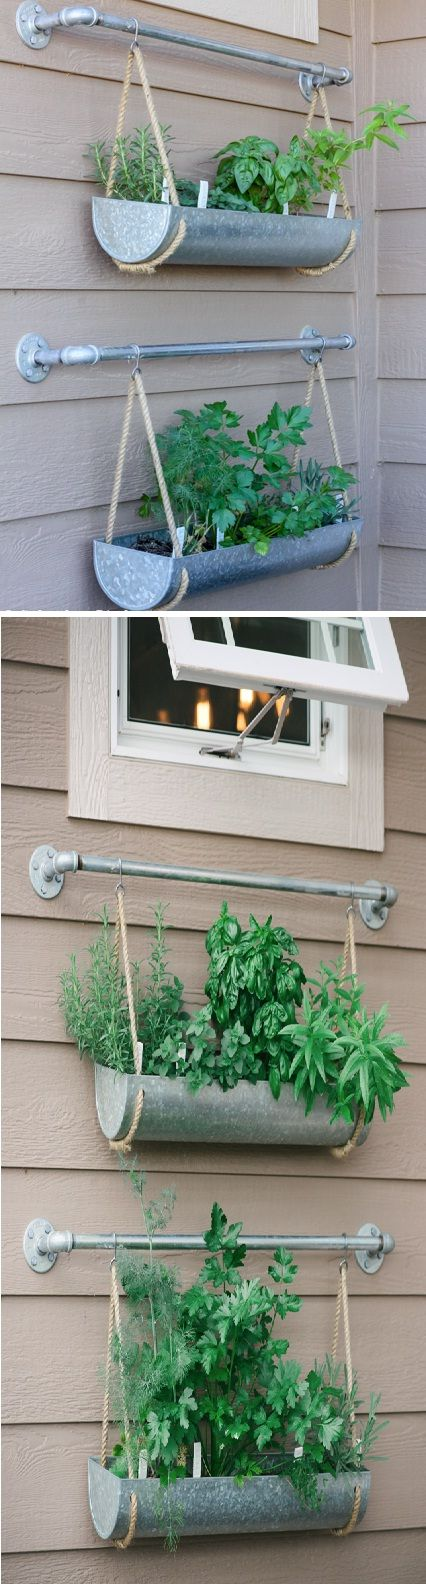 Herb Garden Using Galvanized Planters